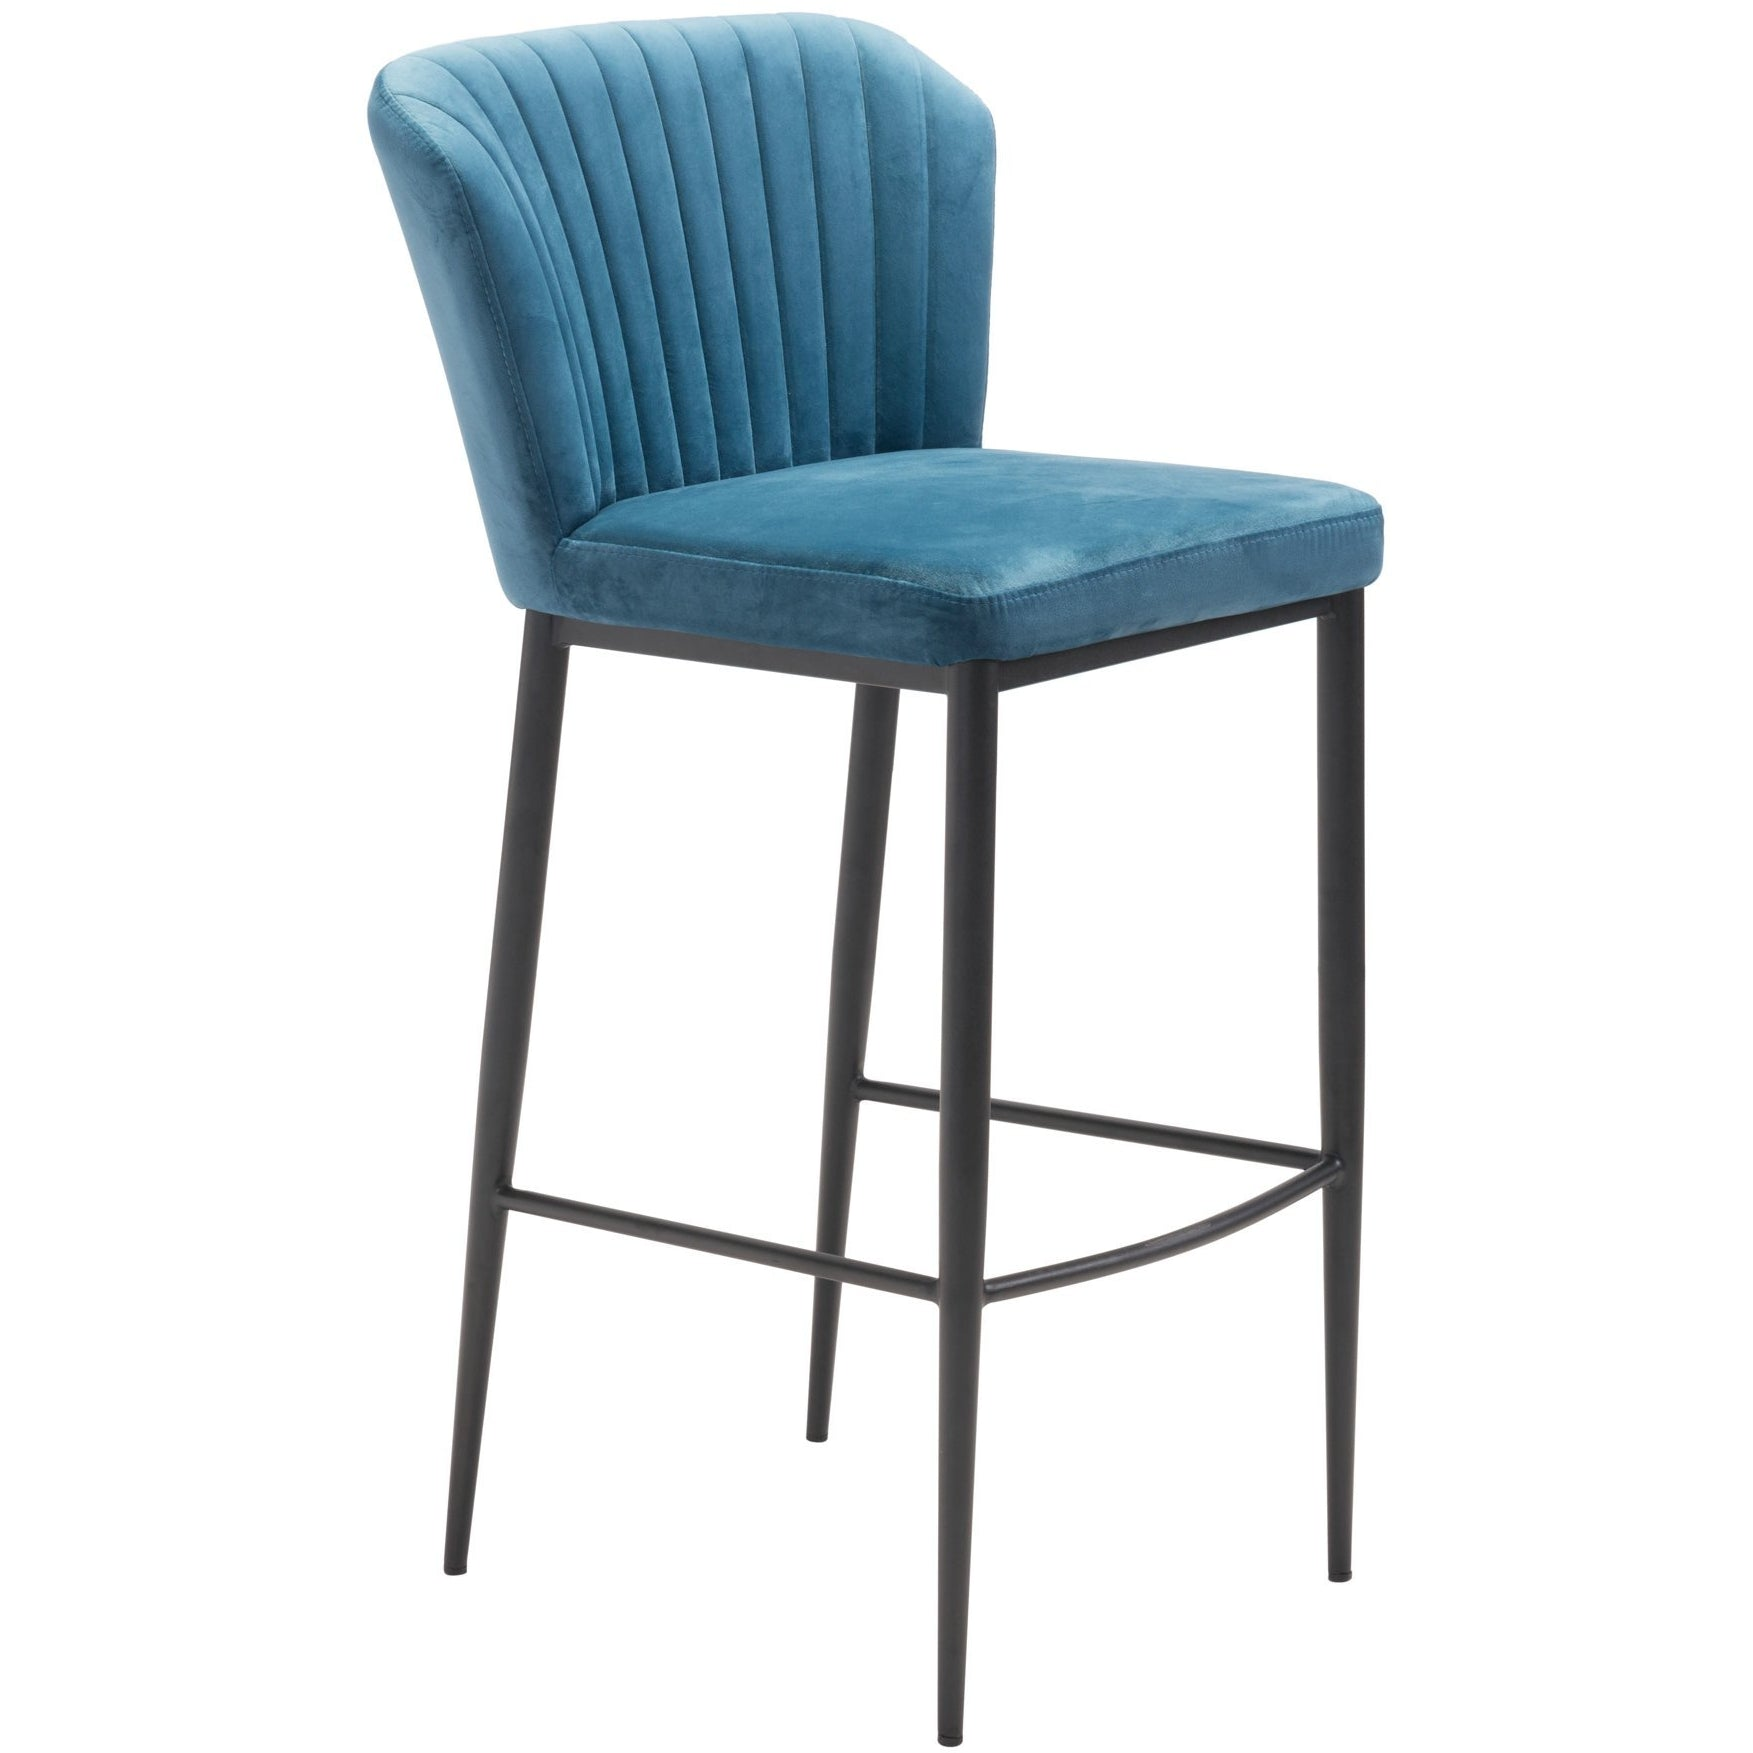 Pleasant Blue Velvet Romo Bar Stool With Black Stainless Steel Legs Cjindustries Chair Design For Home Cjindustriesco